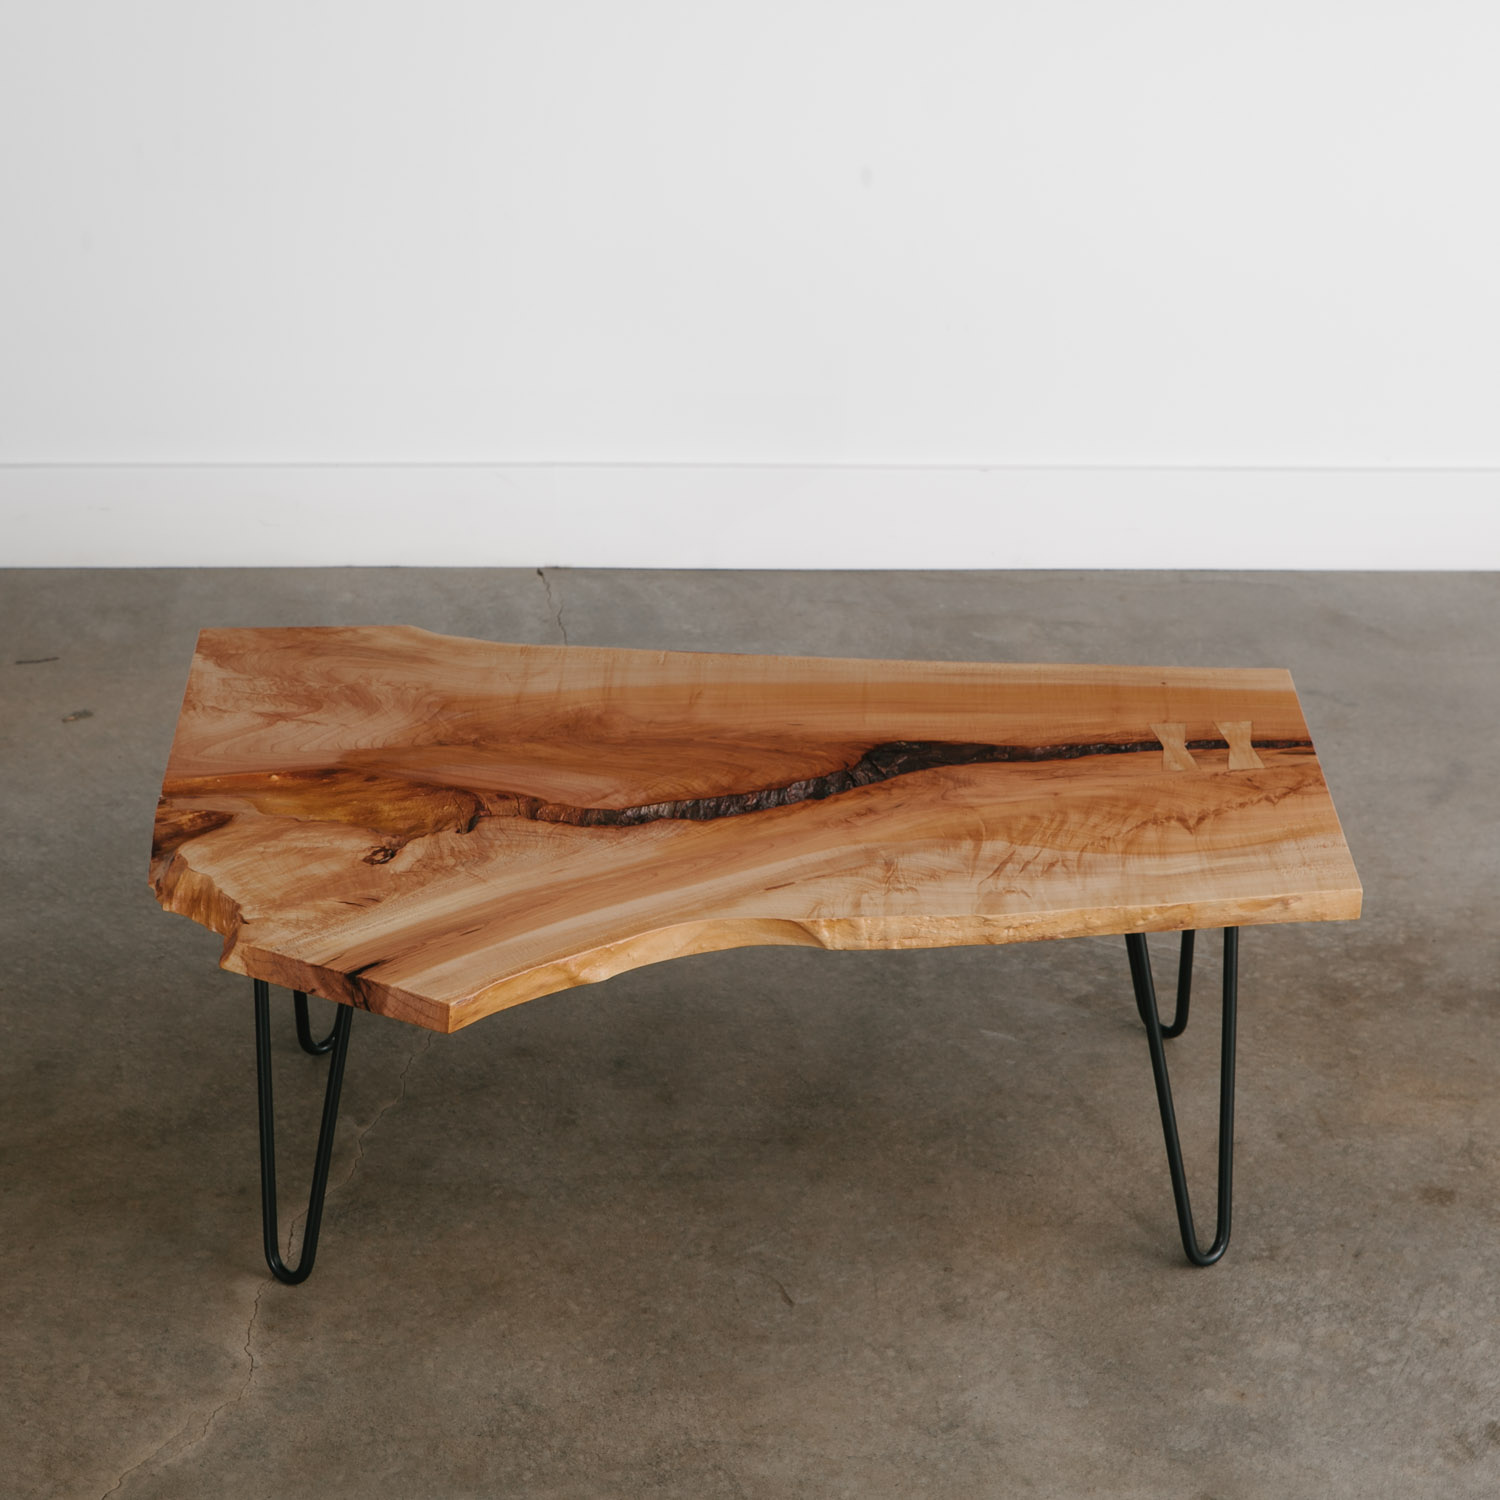 Luxury handmade live edge coffee table